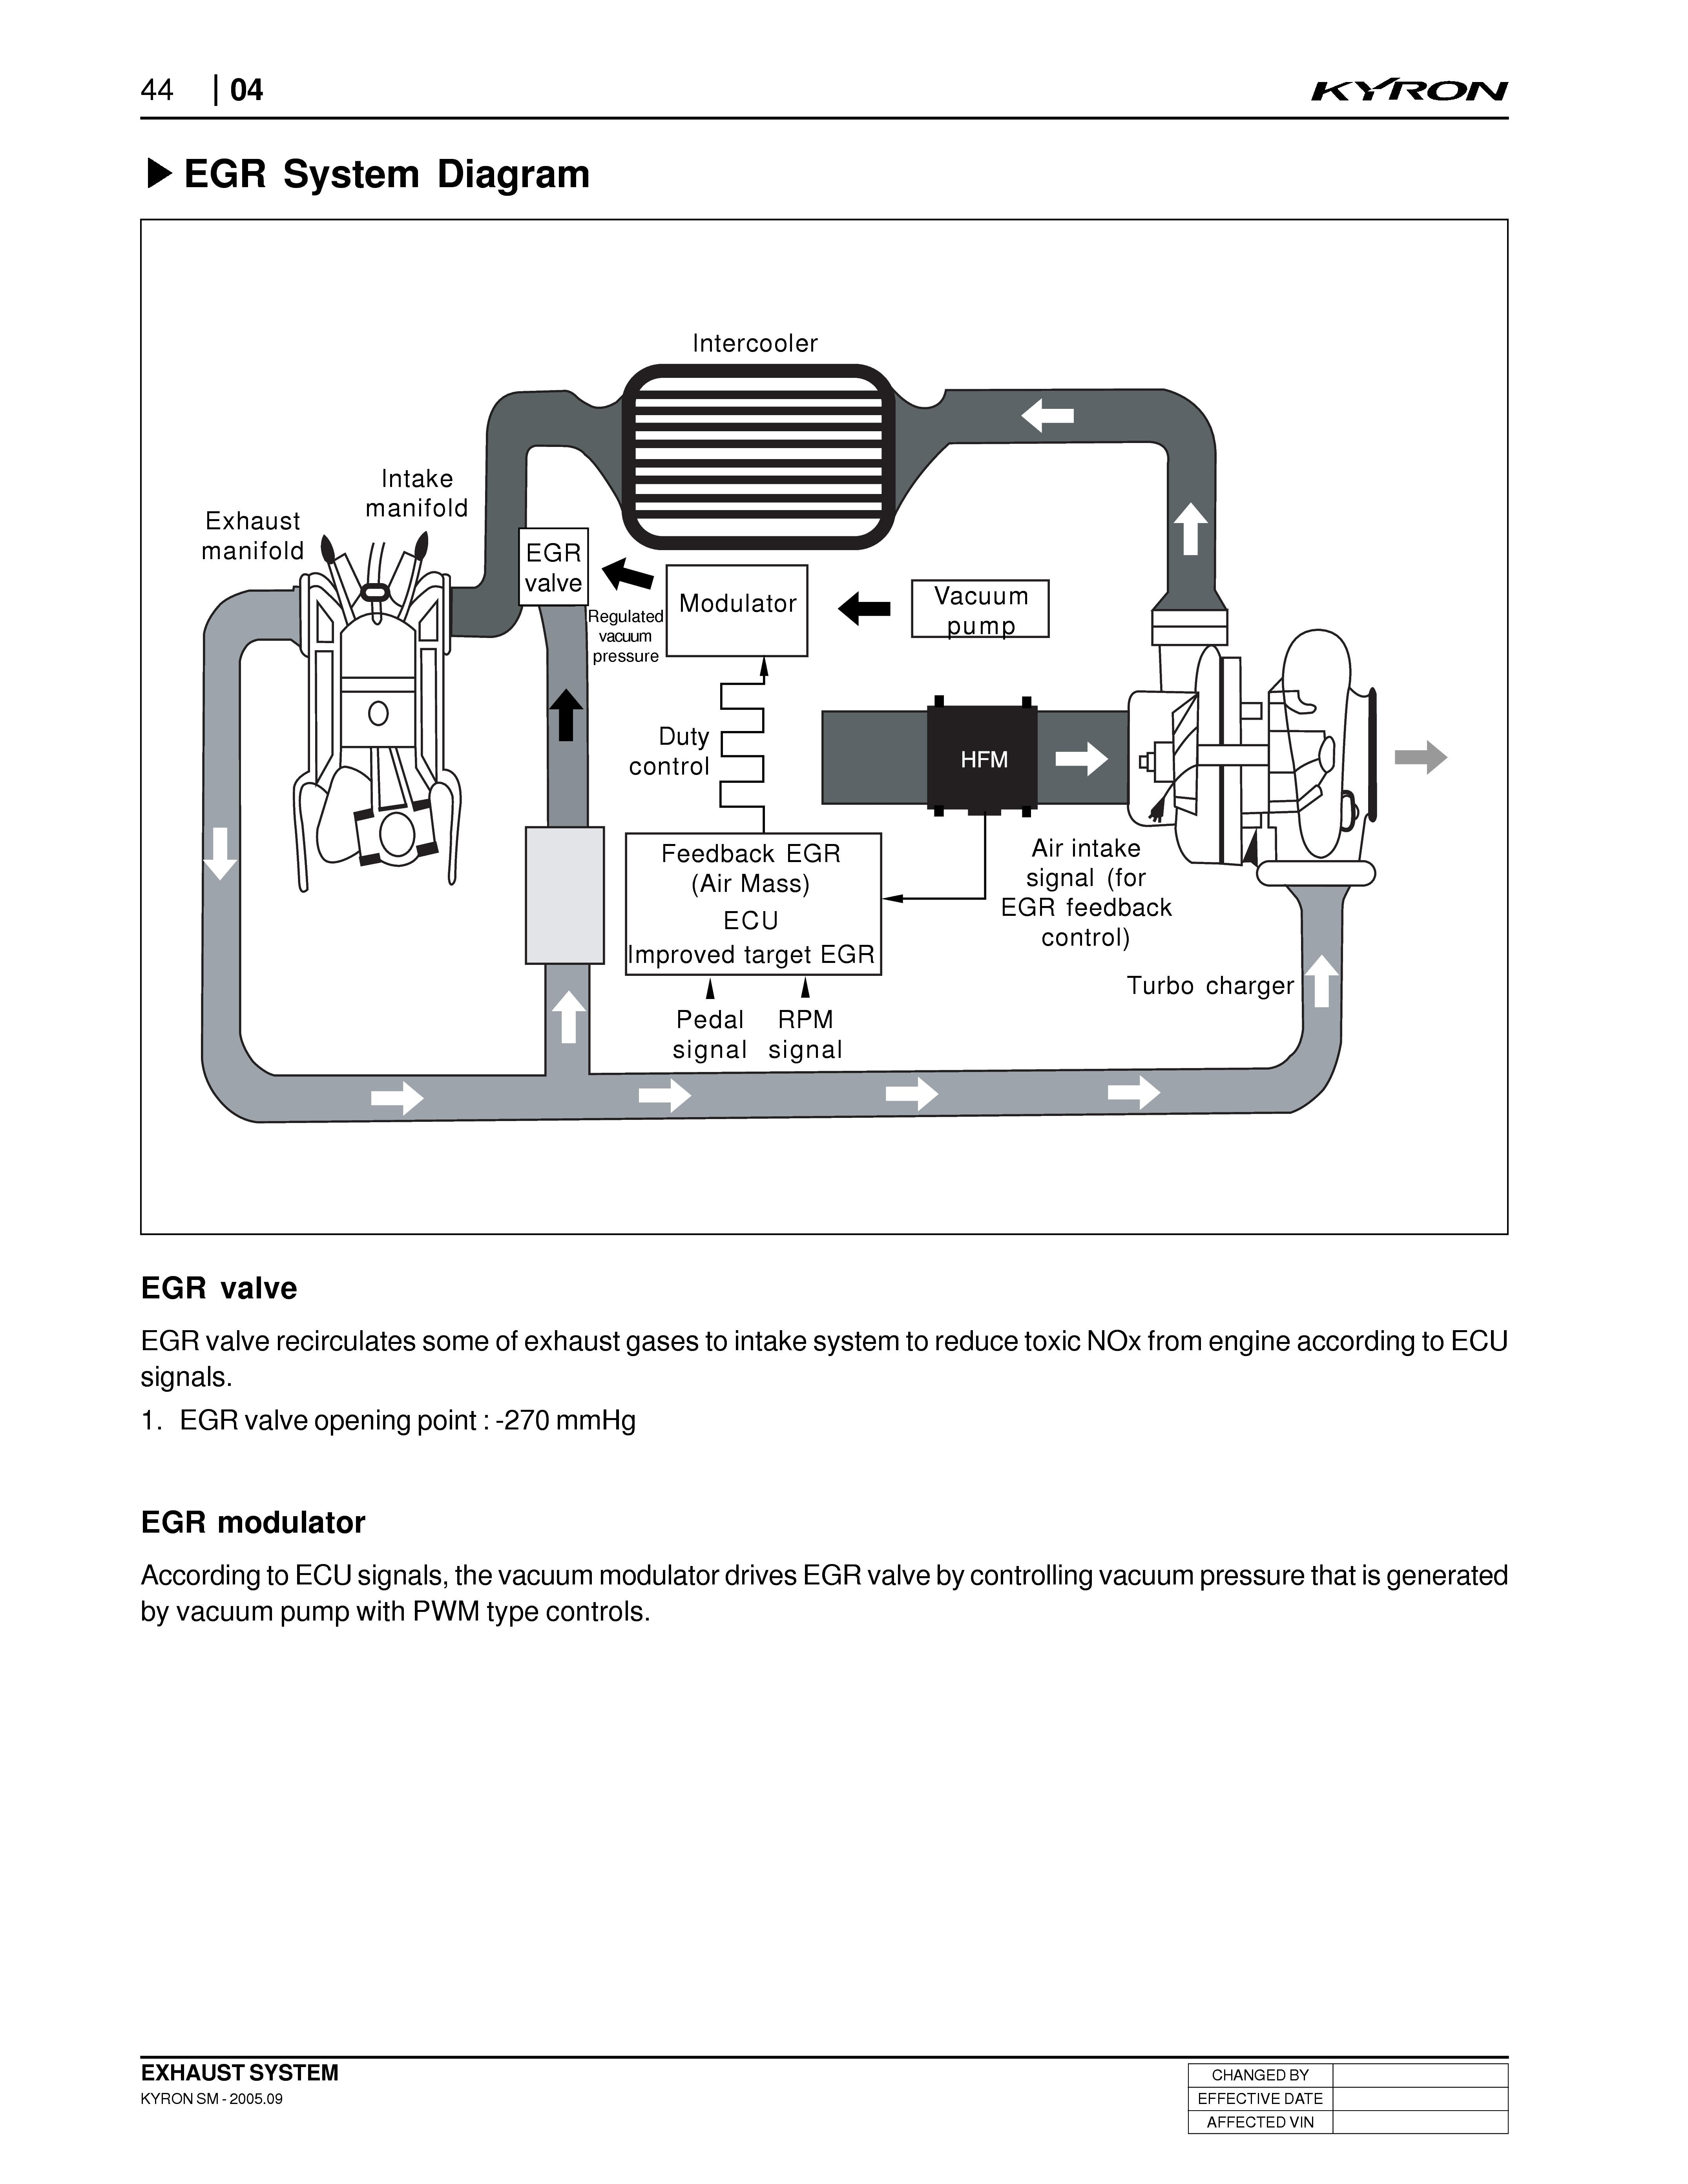 2003 ford escape exhaust system diagram draw an orbital for scandium egr valve explained wiring diagrams